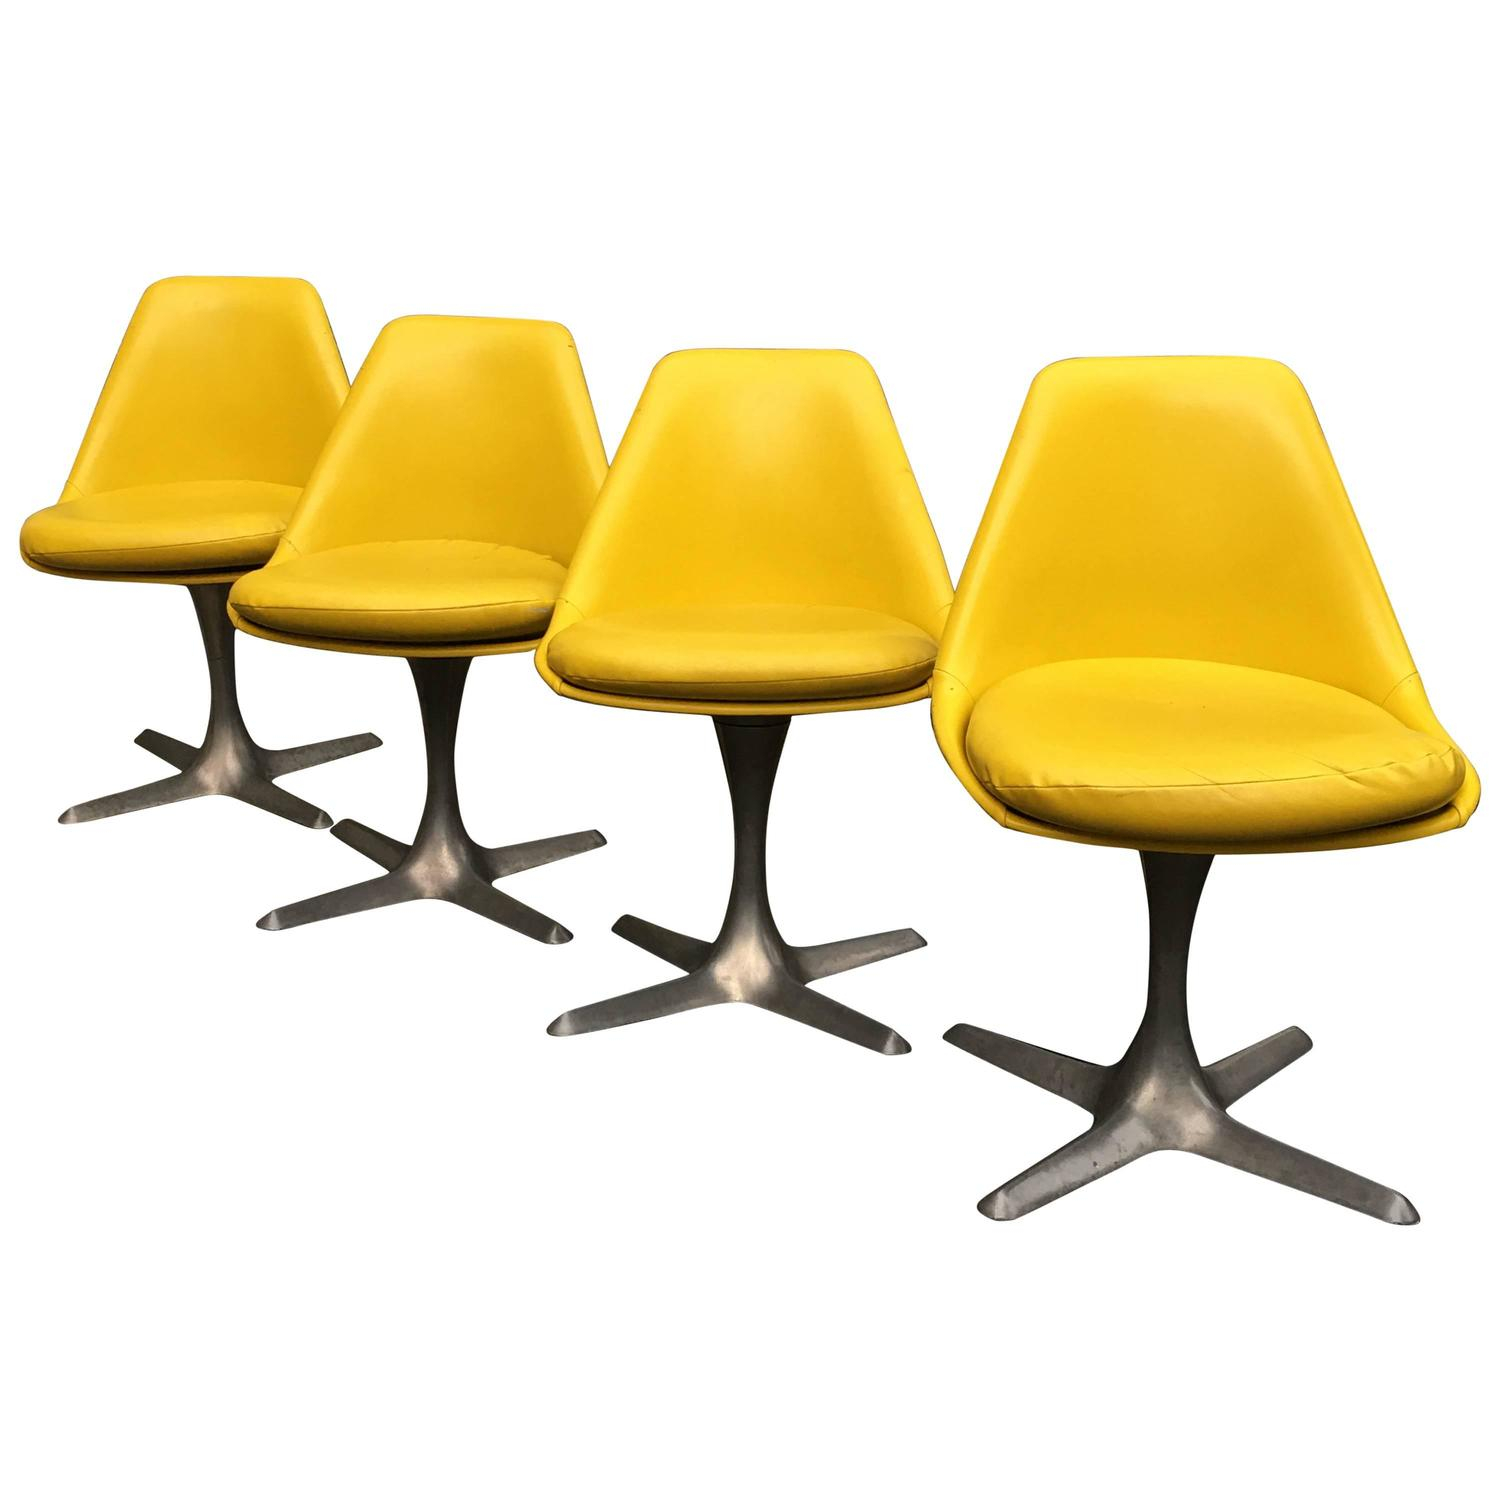 Yellow Dining Chairs: Four Knoll Yellow Dining Chairs For Sale At 1stdibs